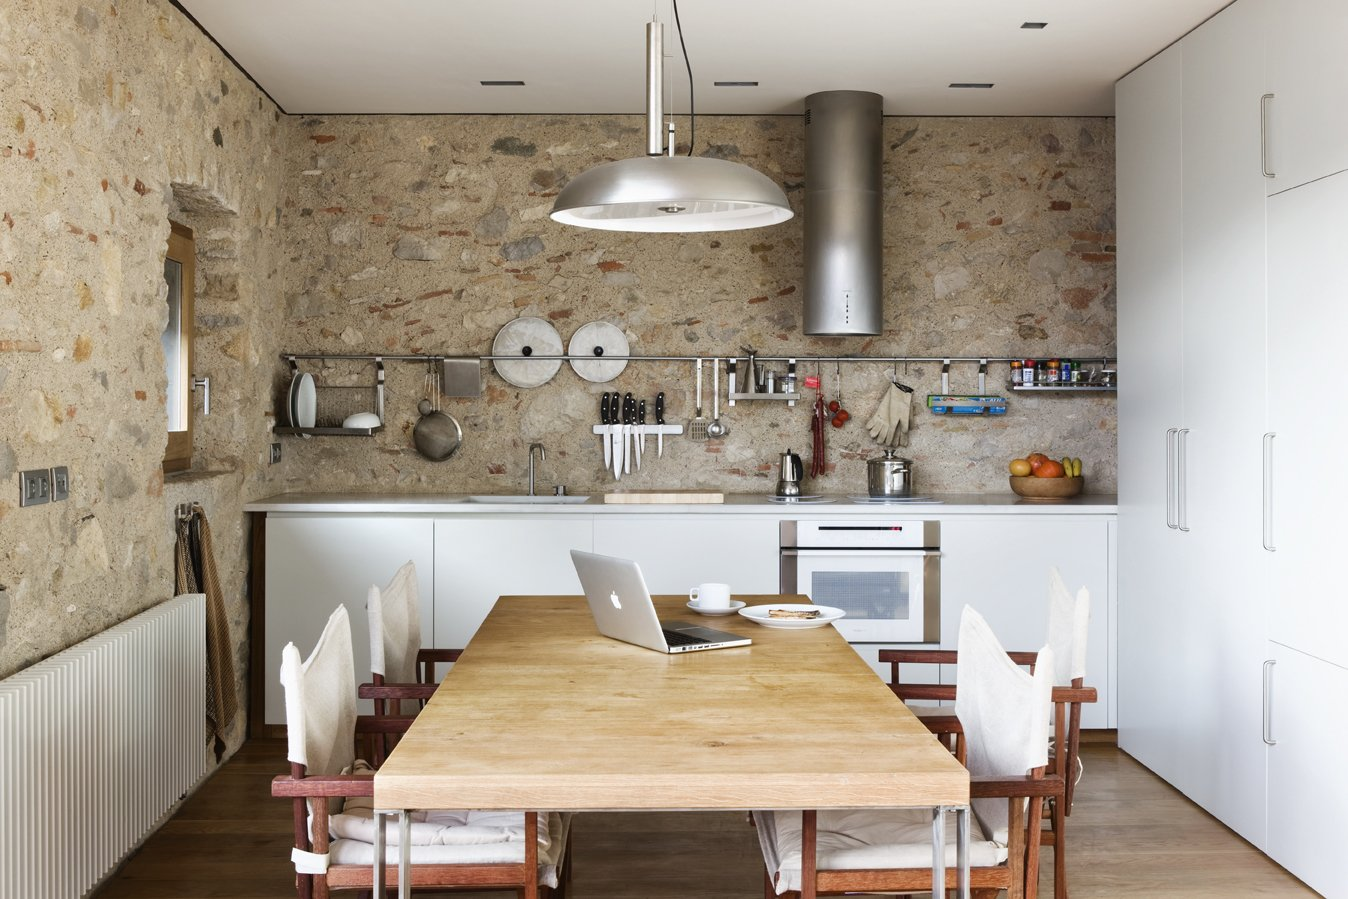 Kitchen, Stone Slab, Laminate, White, Medium Hardwood, Range Hood, Drop In, Wall Oven, Cooktops, Pendant, and Recessed The original 16th century stone walls are left exposed in the kitchen.  Best Kitchen Medium Hardwood Laminate Photos from A Spanish Architect Transforms a Medieval Townhouse Into a Stunning Rental